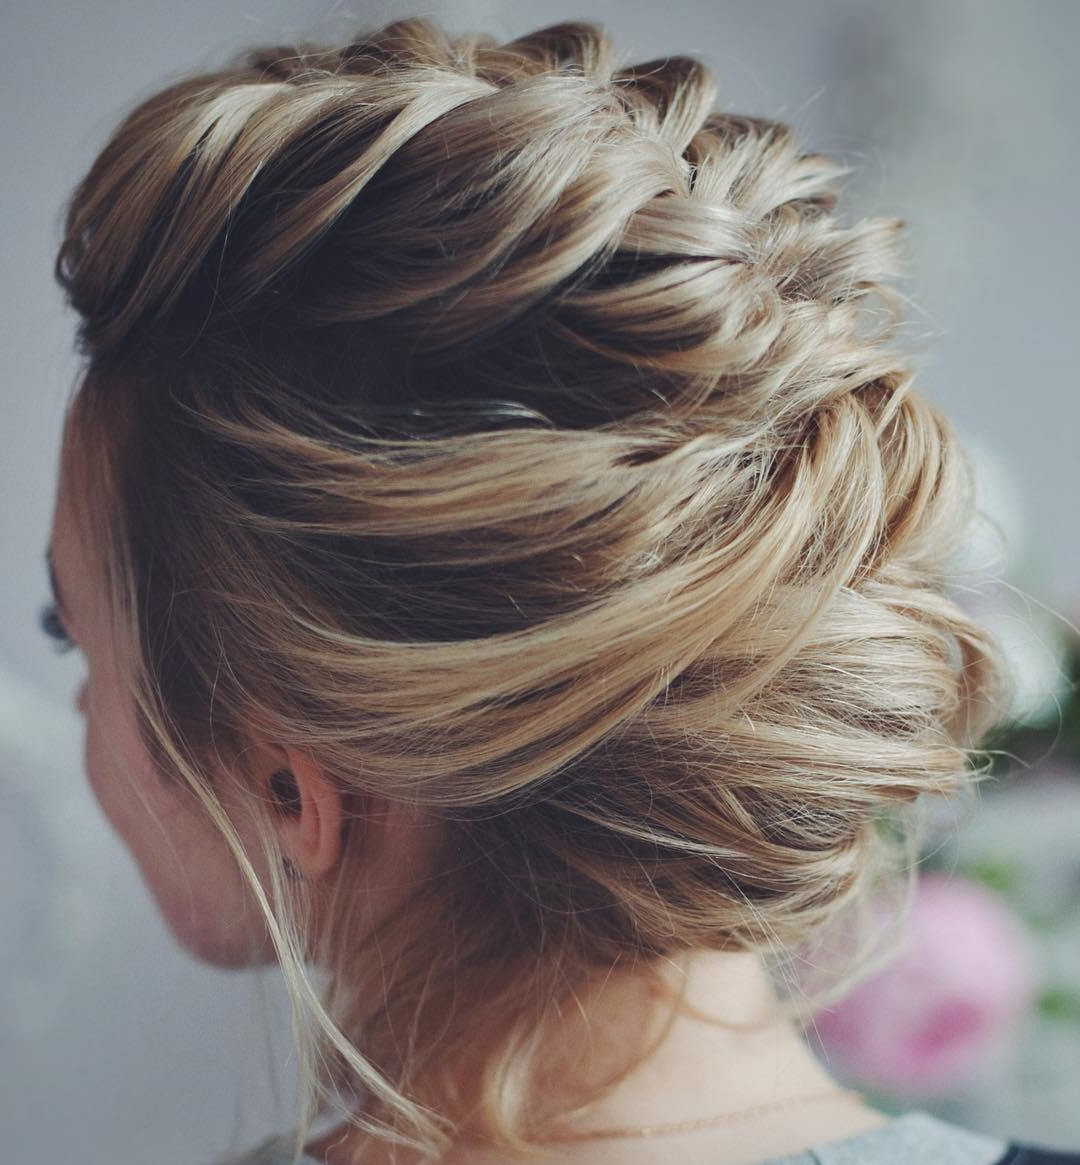 2017 Messy Bun Wedding Hairstyles For Shorter Hair With Regard To 50 Hottest Prom Hairstyles For Short Hair (View 3 of 20)